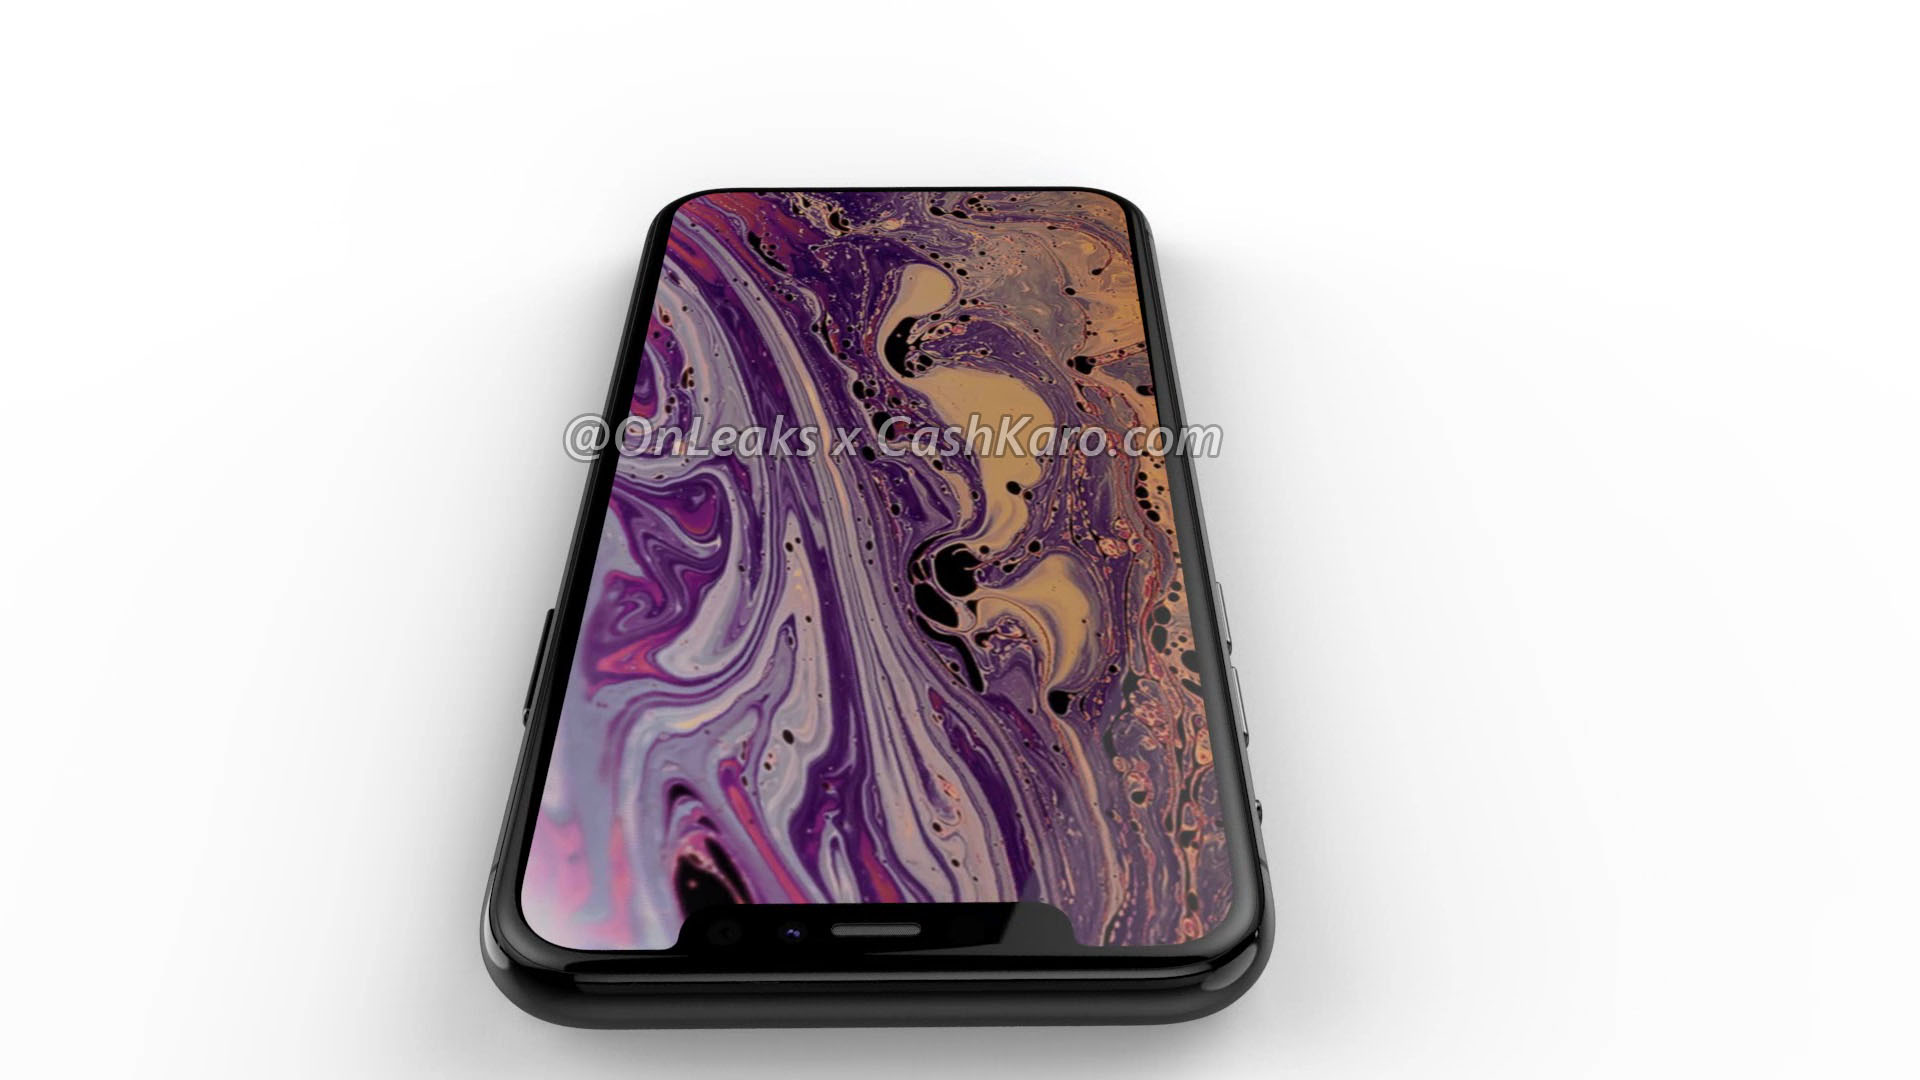 Iphone Xi Renders New Back Glass Design Img 6